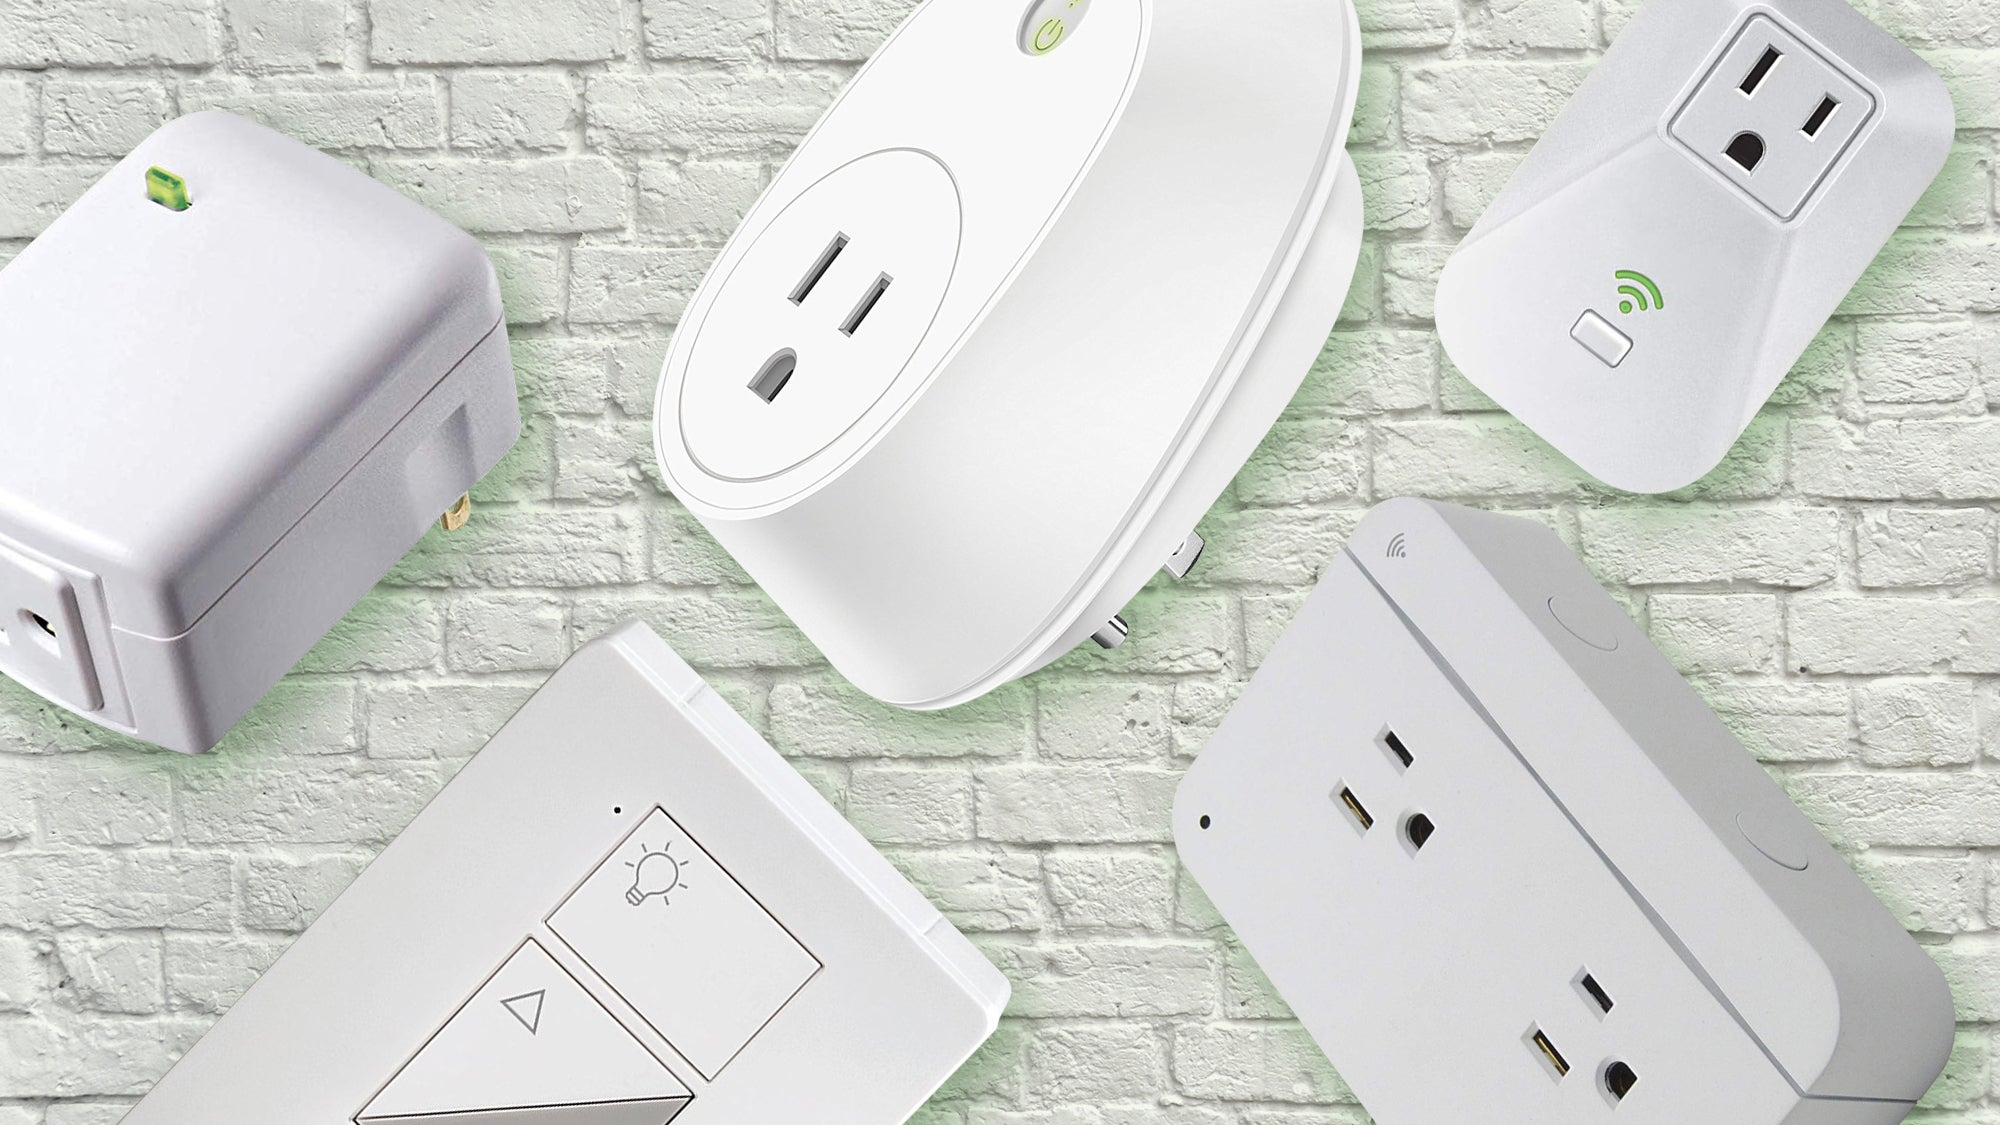 Best smart plugs of 2019: Reviews and buying advice | TechHive